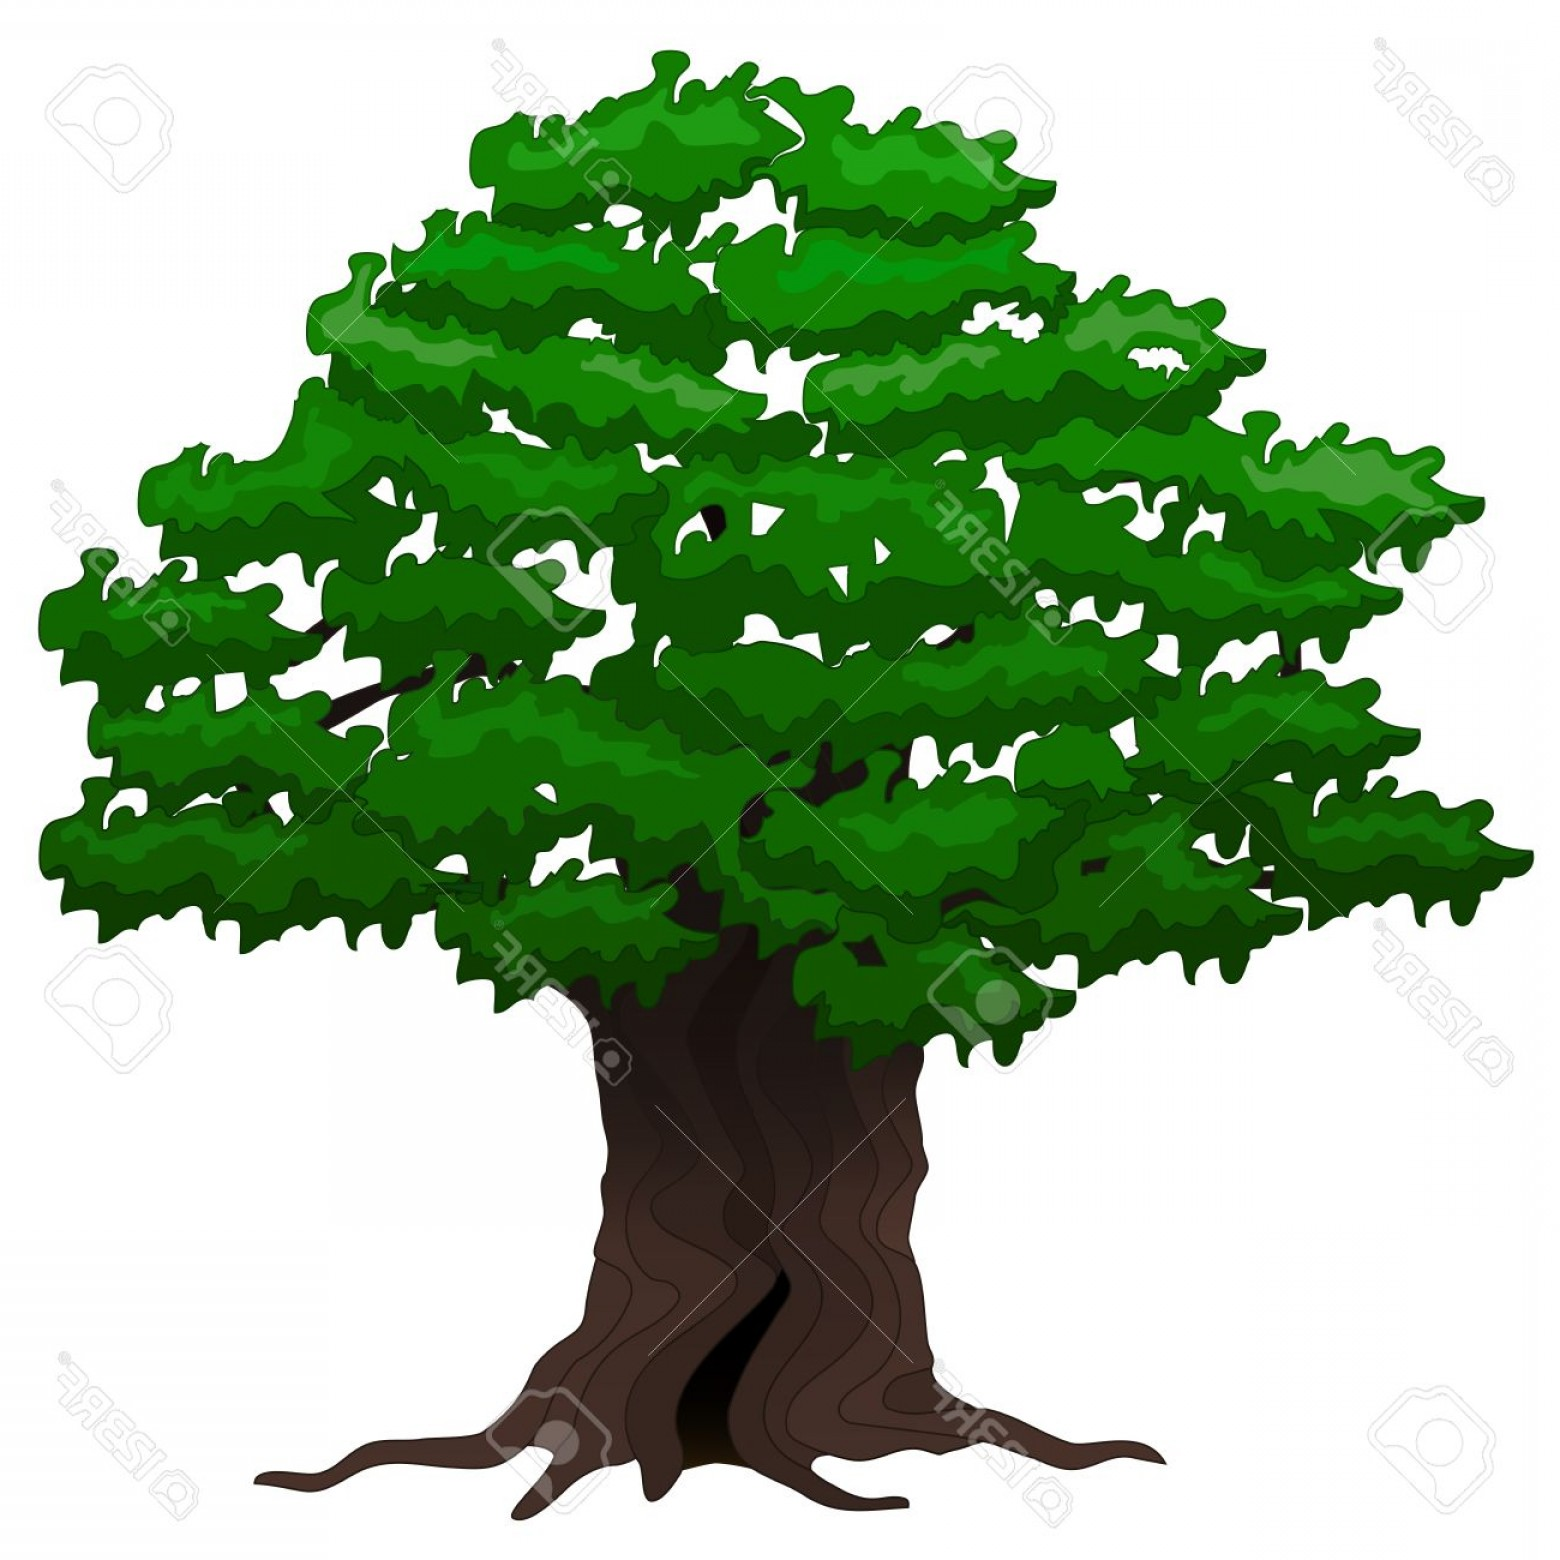 Red Oak Tree Vector: Photostock Vector Vector Illustration Big Old Oak Tree On A White Background